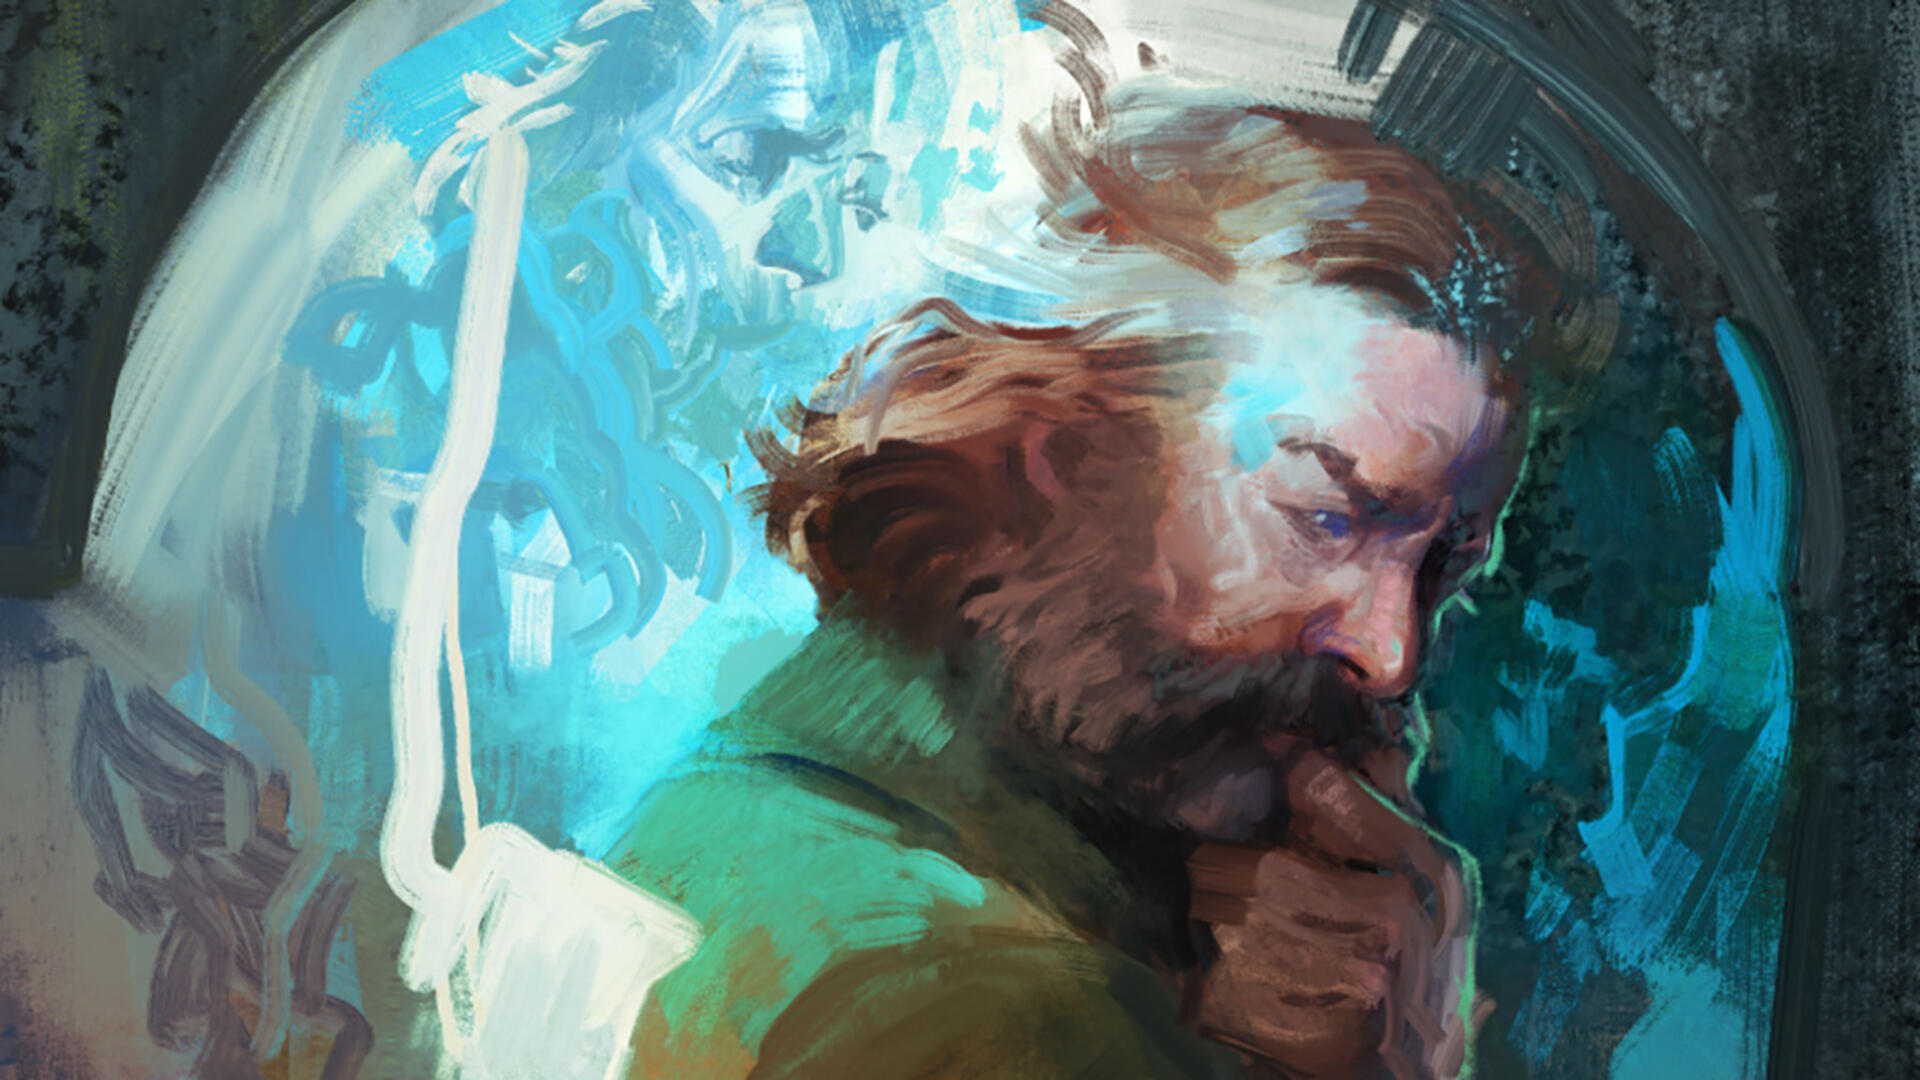 Disco Elysium Has Modding Now, So You Can Create Your Own Inner Demons